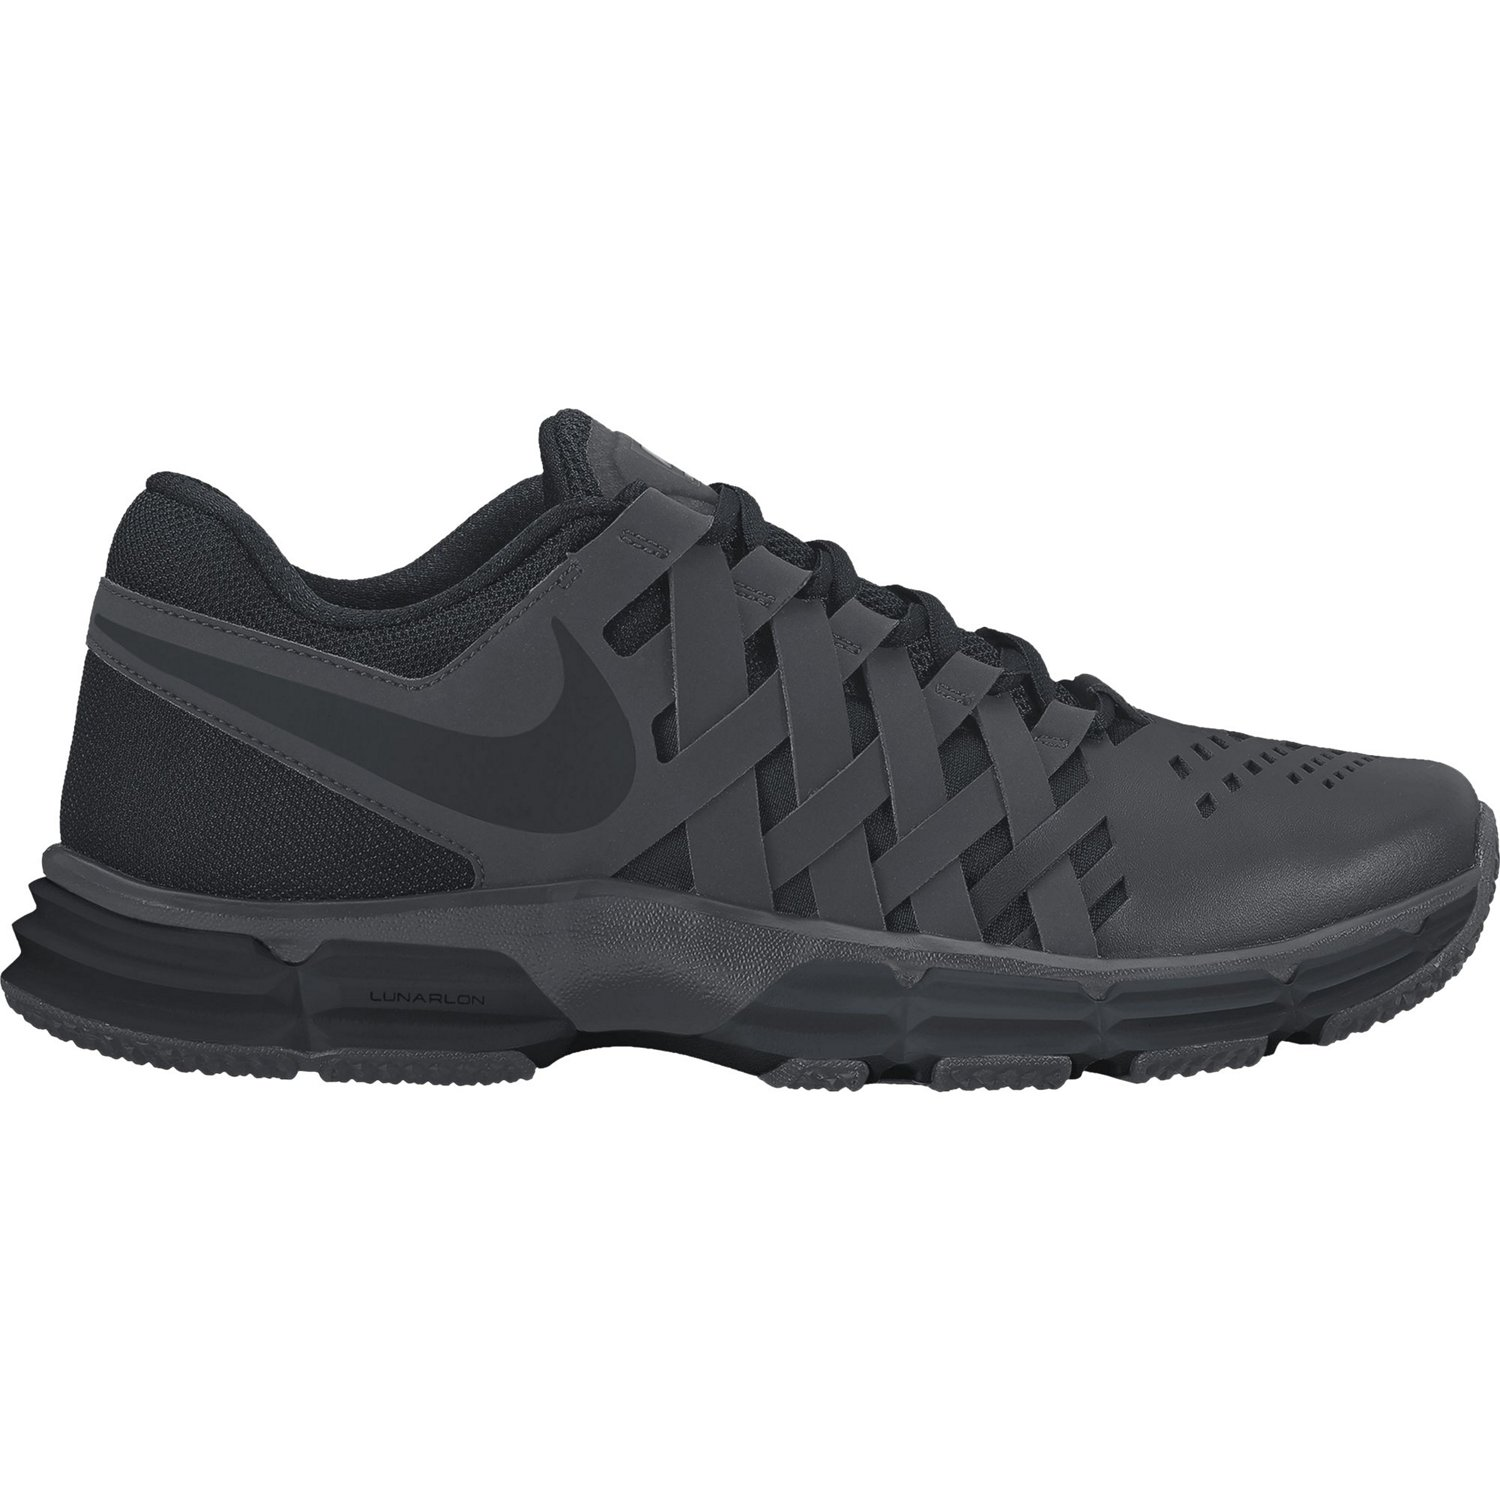 6c15eec12dbb Nike Men s Lunar Fingertrap TR Training Shoes